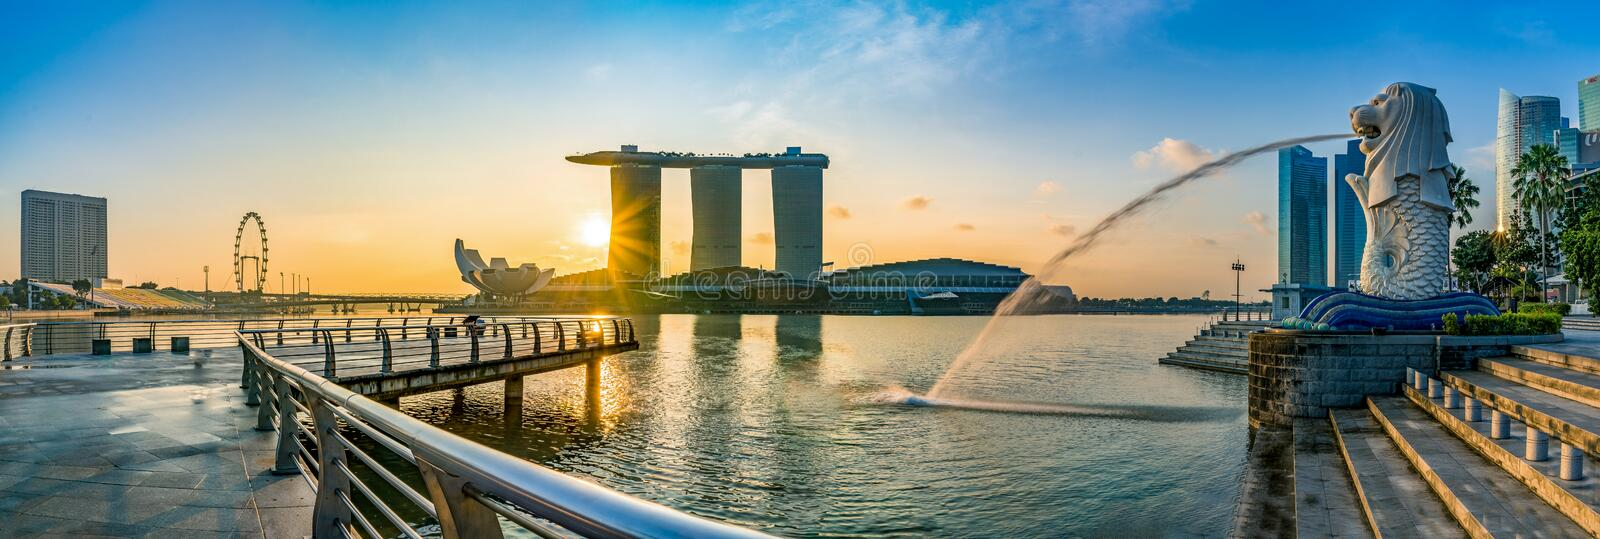 Alba a Marina Bay a Singapore immagine stock